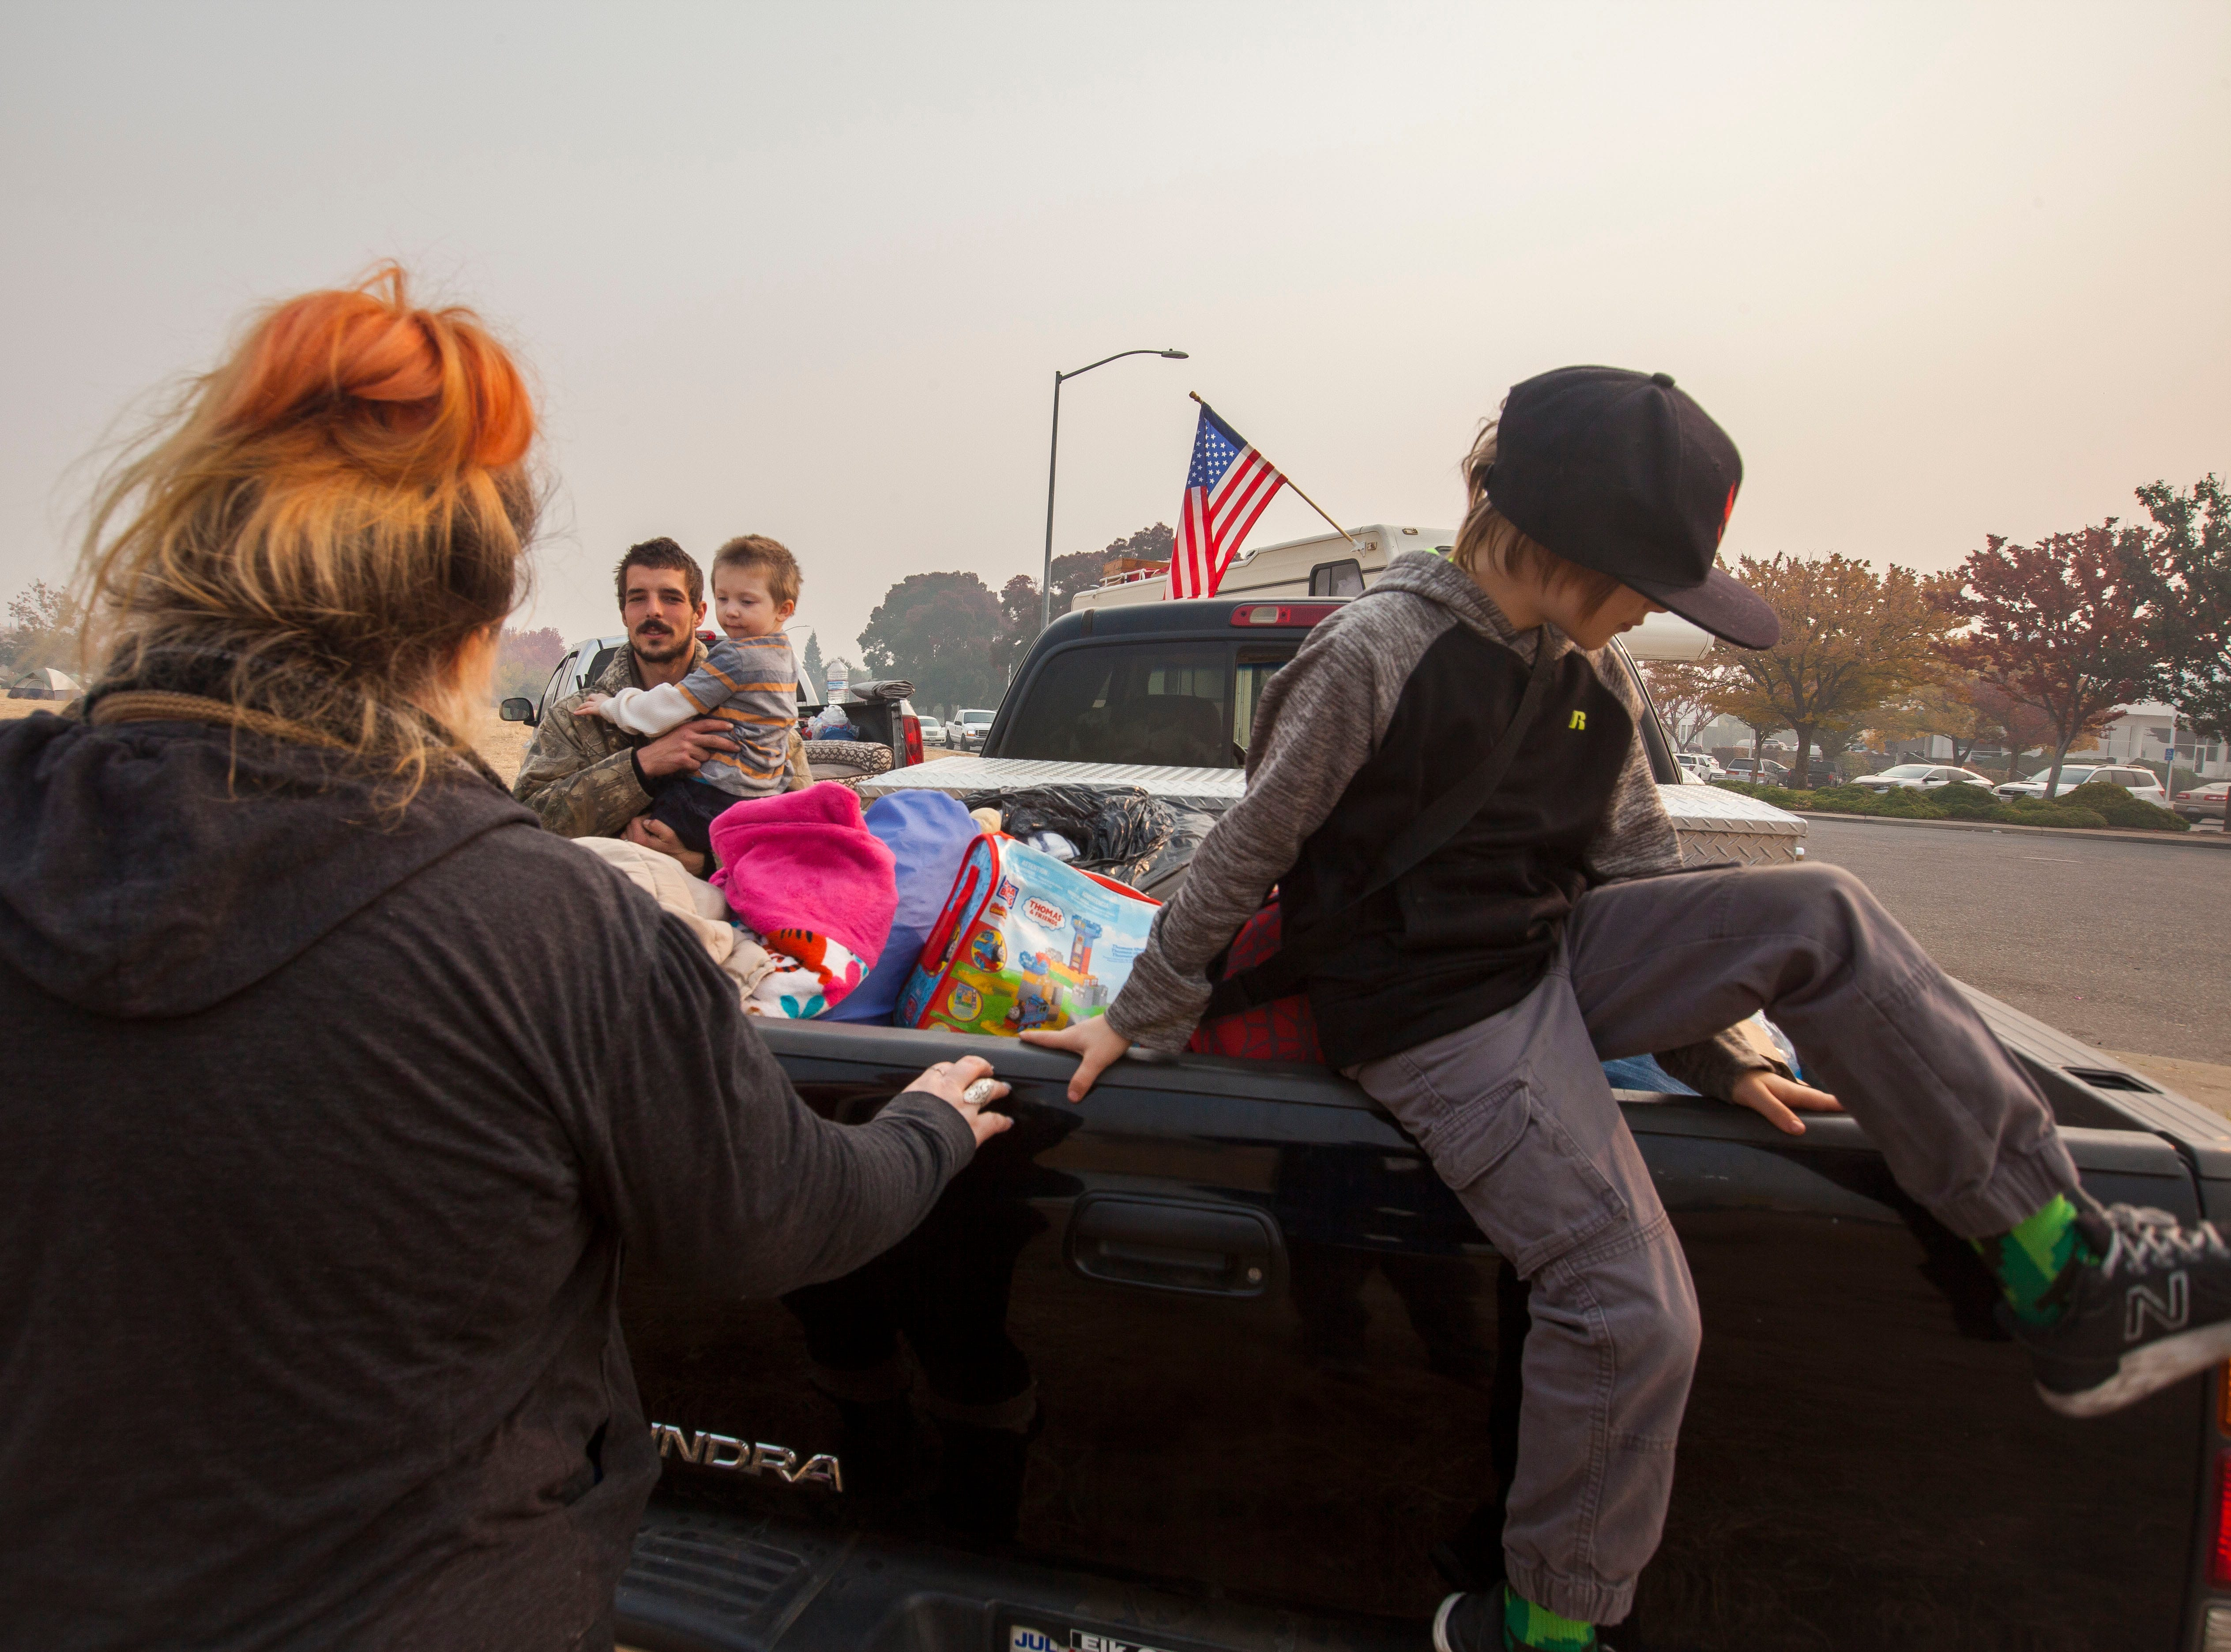 Ryan Belcher carries his 4-year-old son Bentley while talking to his wife Casey and their 9-year-old son Michael. Casey, Ryan and their three children lost their home and vehicles in the Camp Fire. Her husband's boss has given them a work truck to drive until the family can get situated. The children sleep in the truck at night and the parents share a small tent in a field next to the Walmart in Chico, CA.